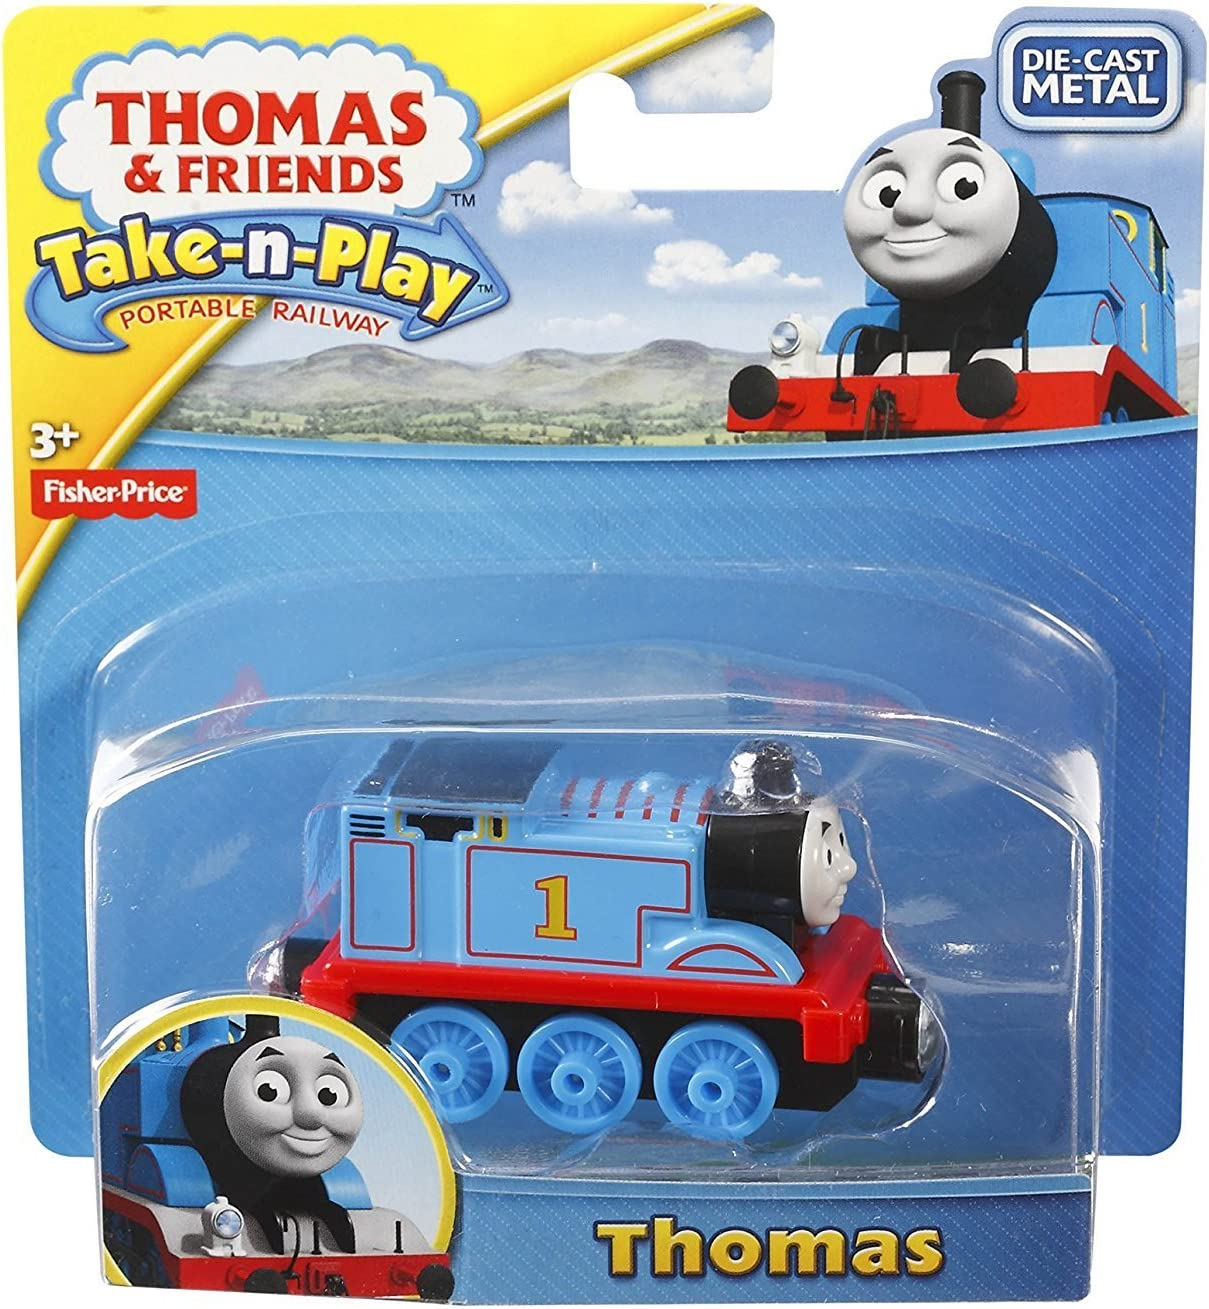 NEW THOMAS /& FRIENDS COLLECTABLE TAKE AND PLAY RAILWAY TRAINS ENGINES DIE CAST